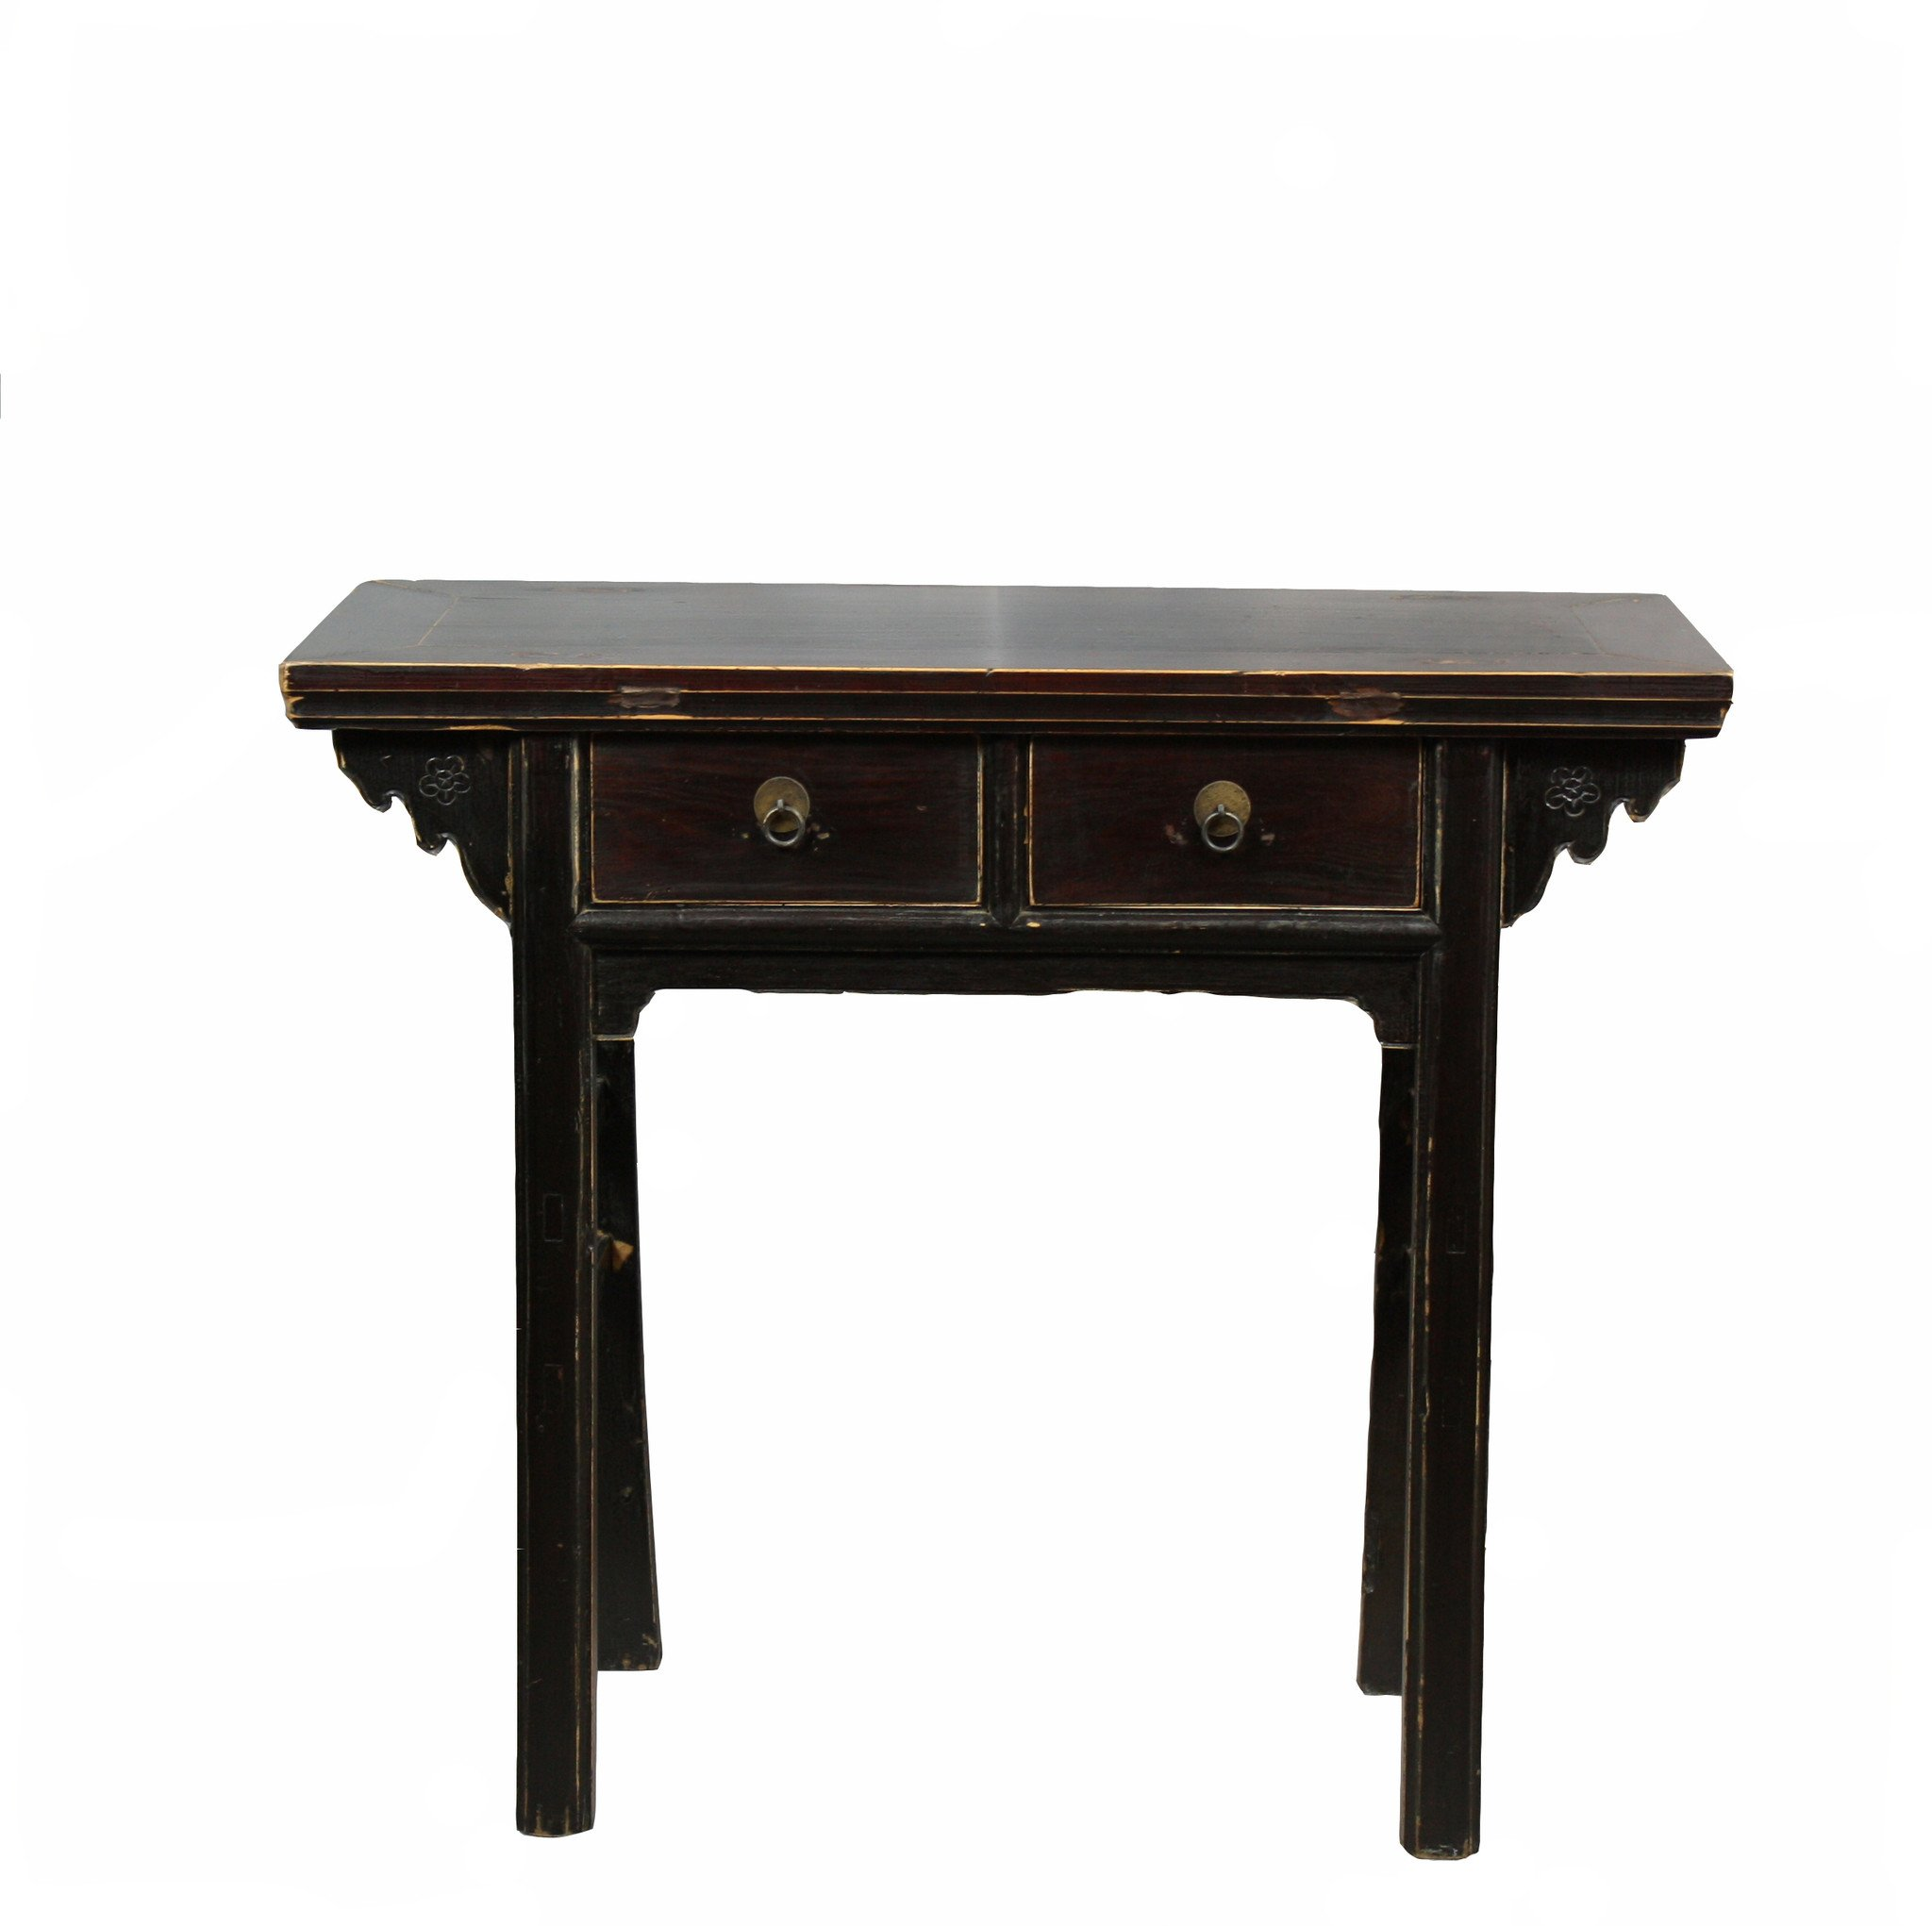 two drawer black accent table dyag east with furniture winnipeg ashley drop leaf inch square vinyl tablecloth frames vancouver metal chair legs tiffany tulip lamp stained glass